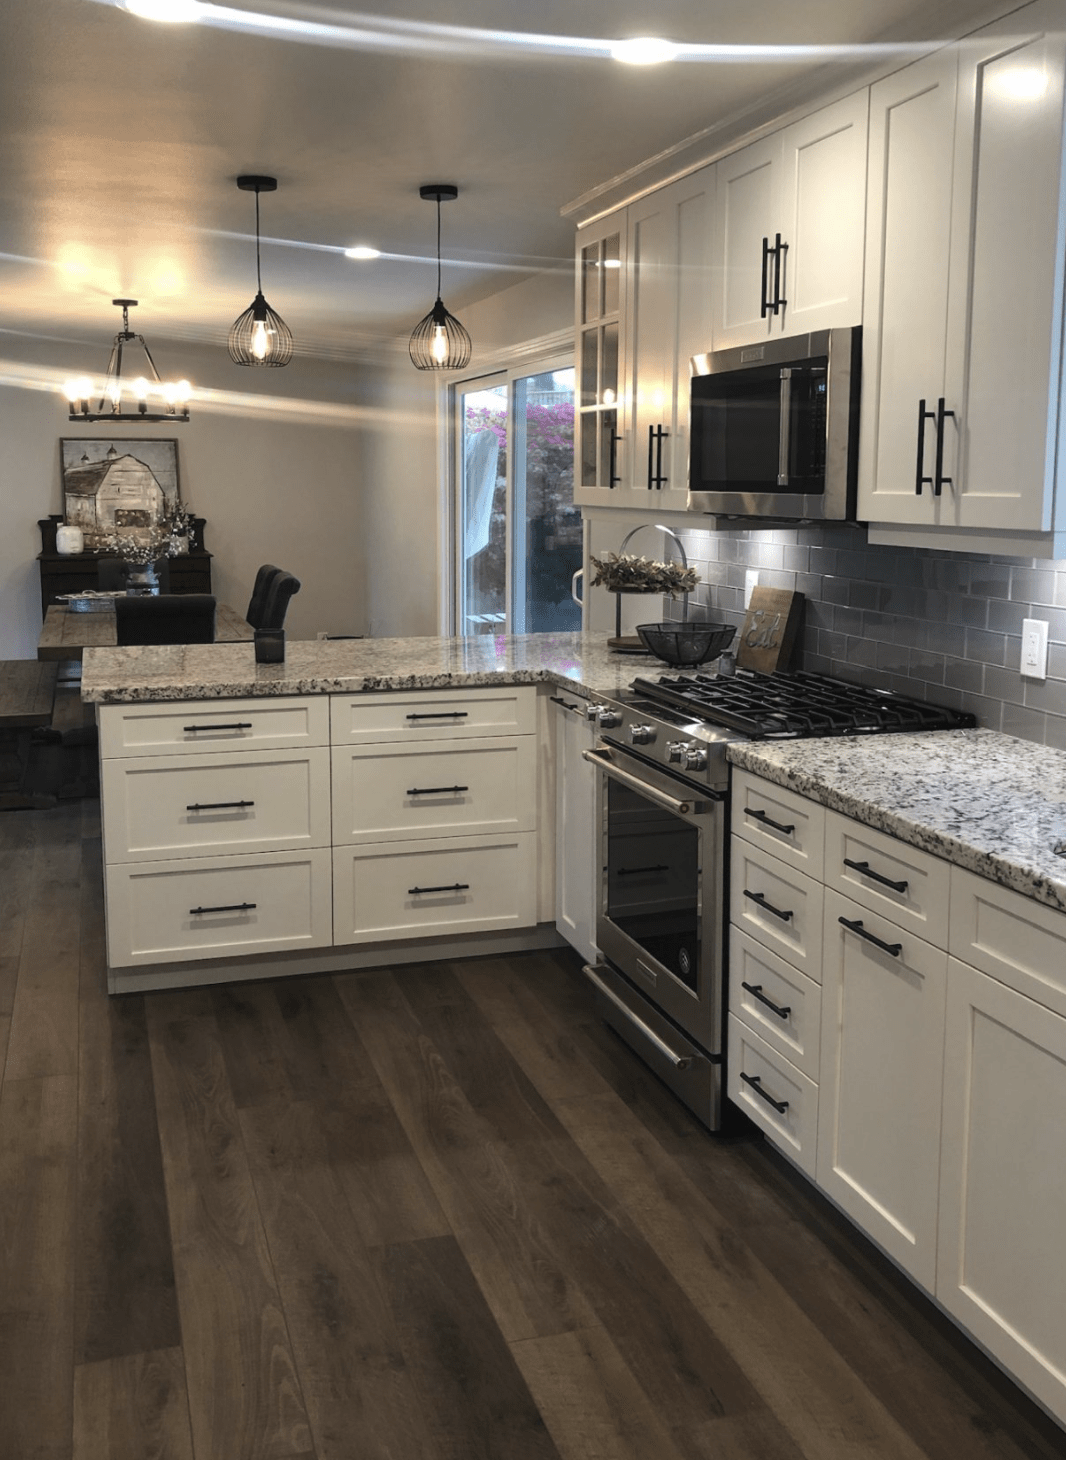 Kitchen remodeling in Fullerton, CA from TS Home Design Center / Rite Loom Flooring